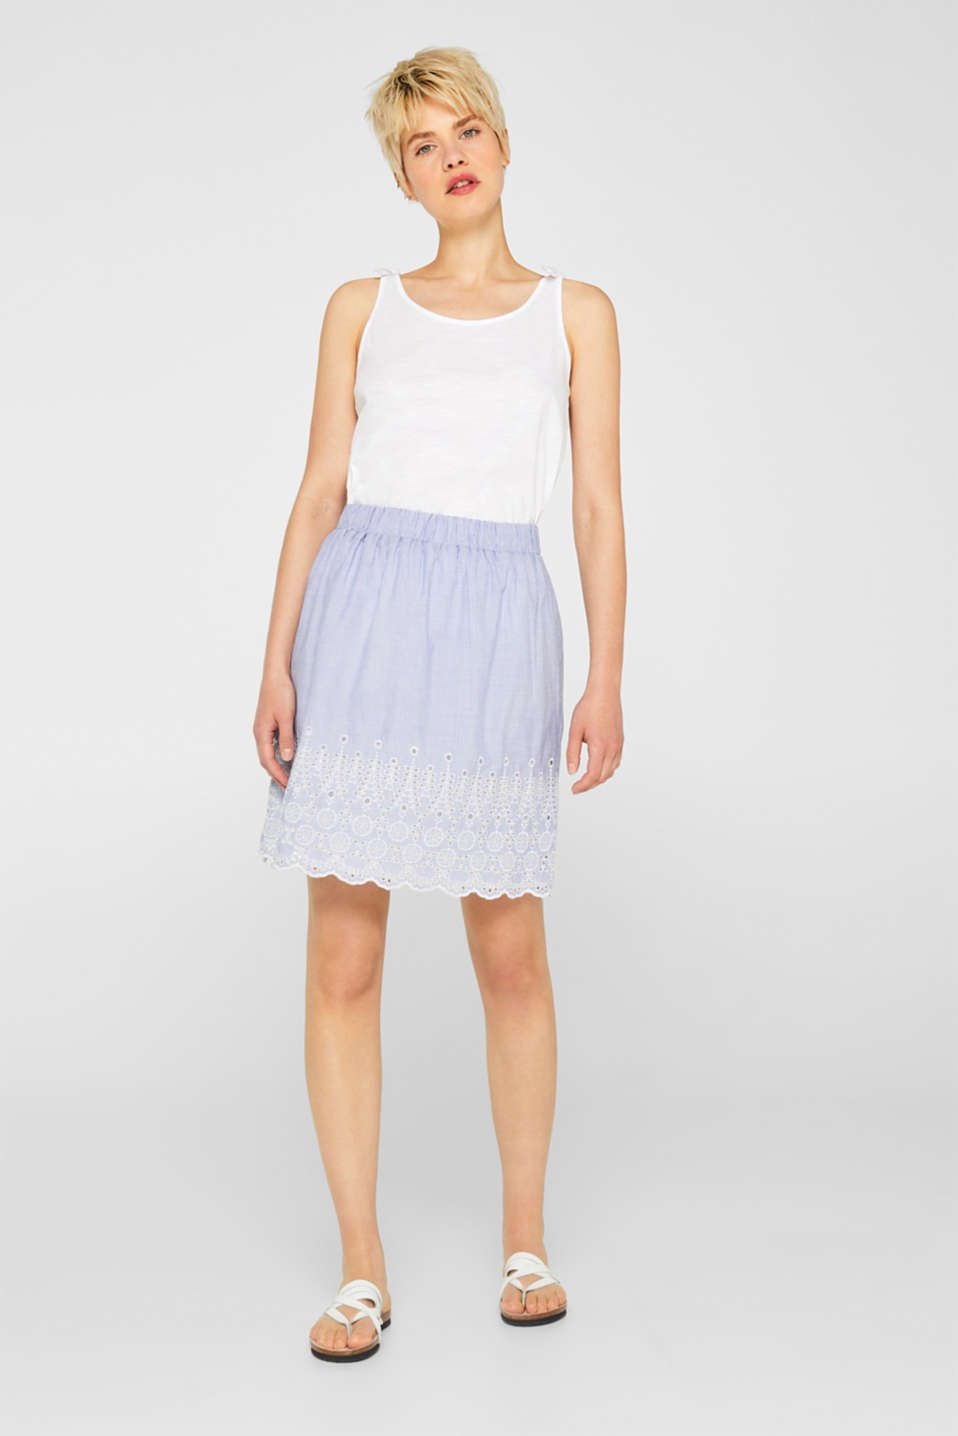 Esprit - Broderie anglaise detail skirt, 100% cotton